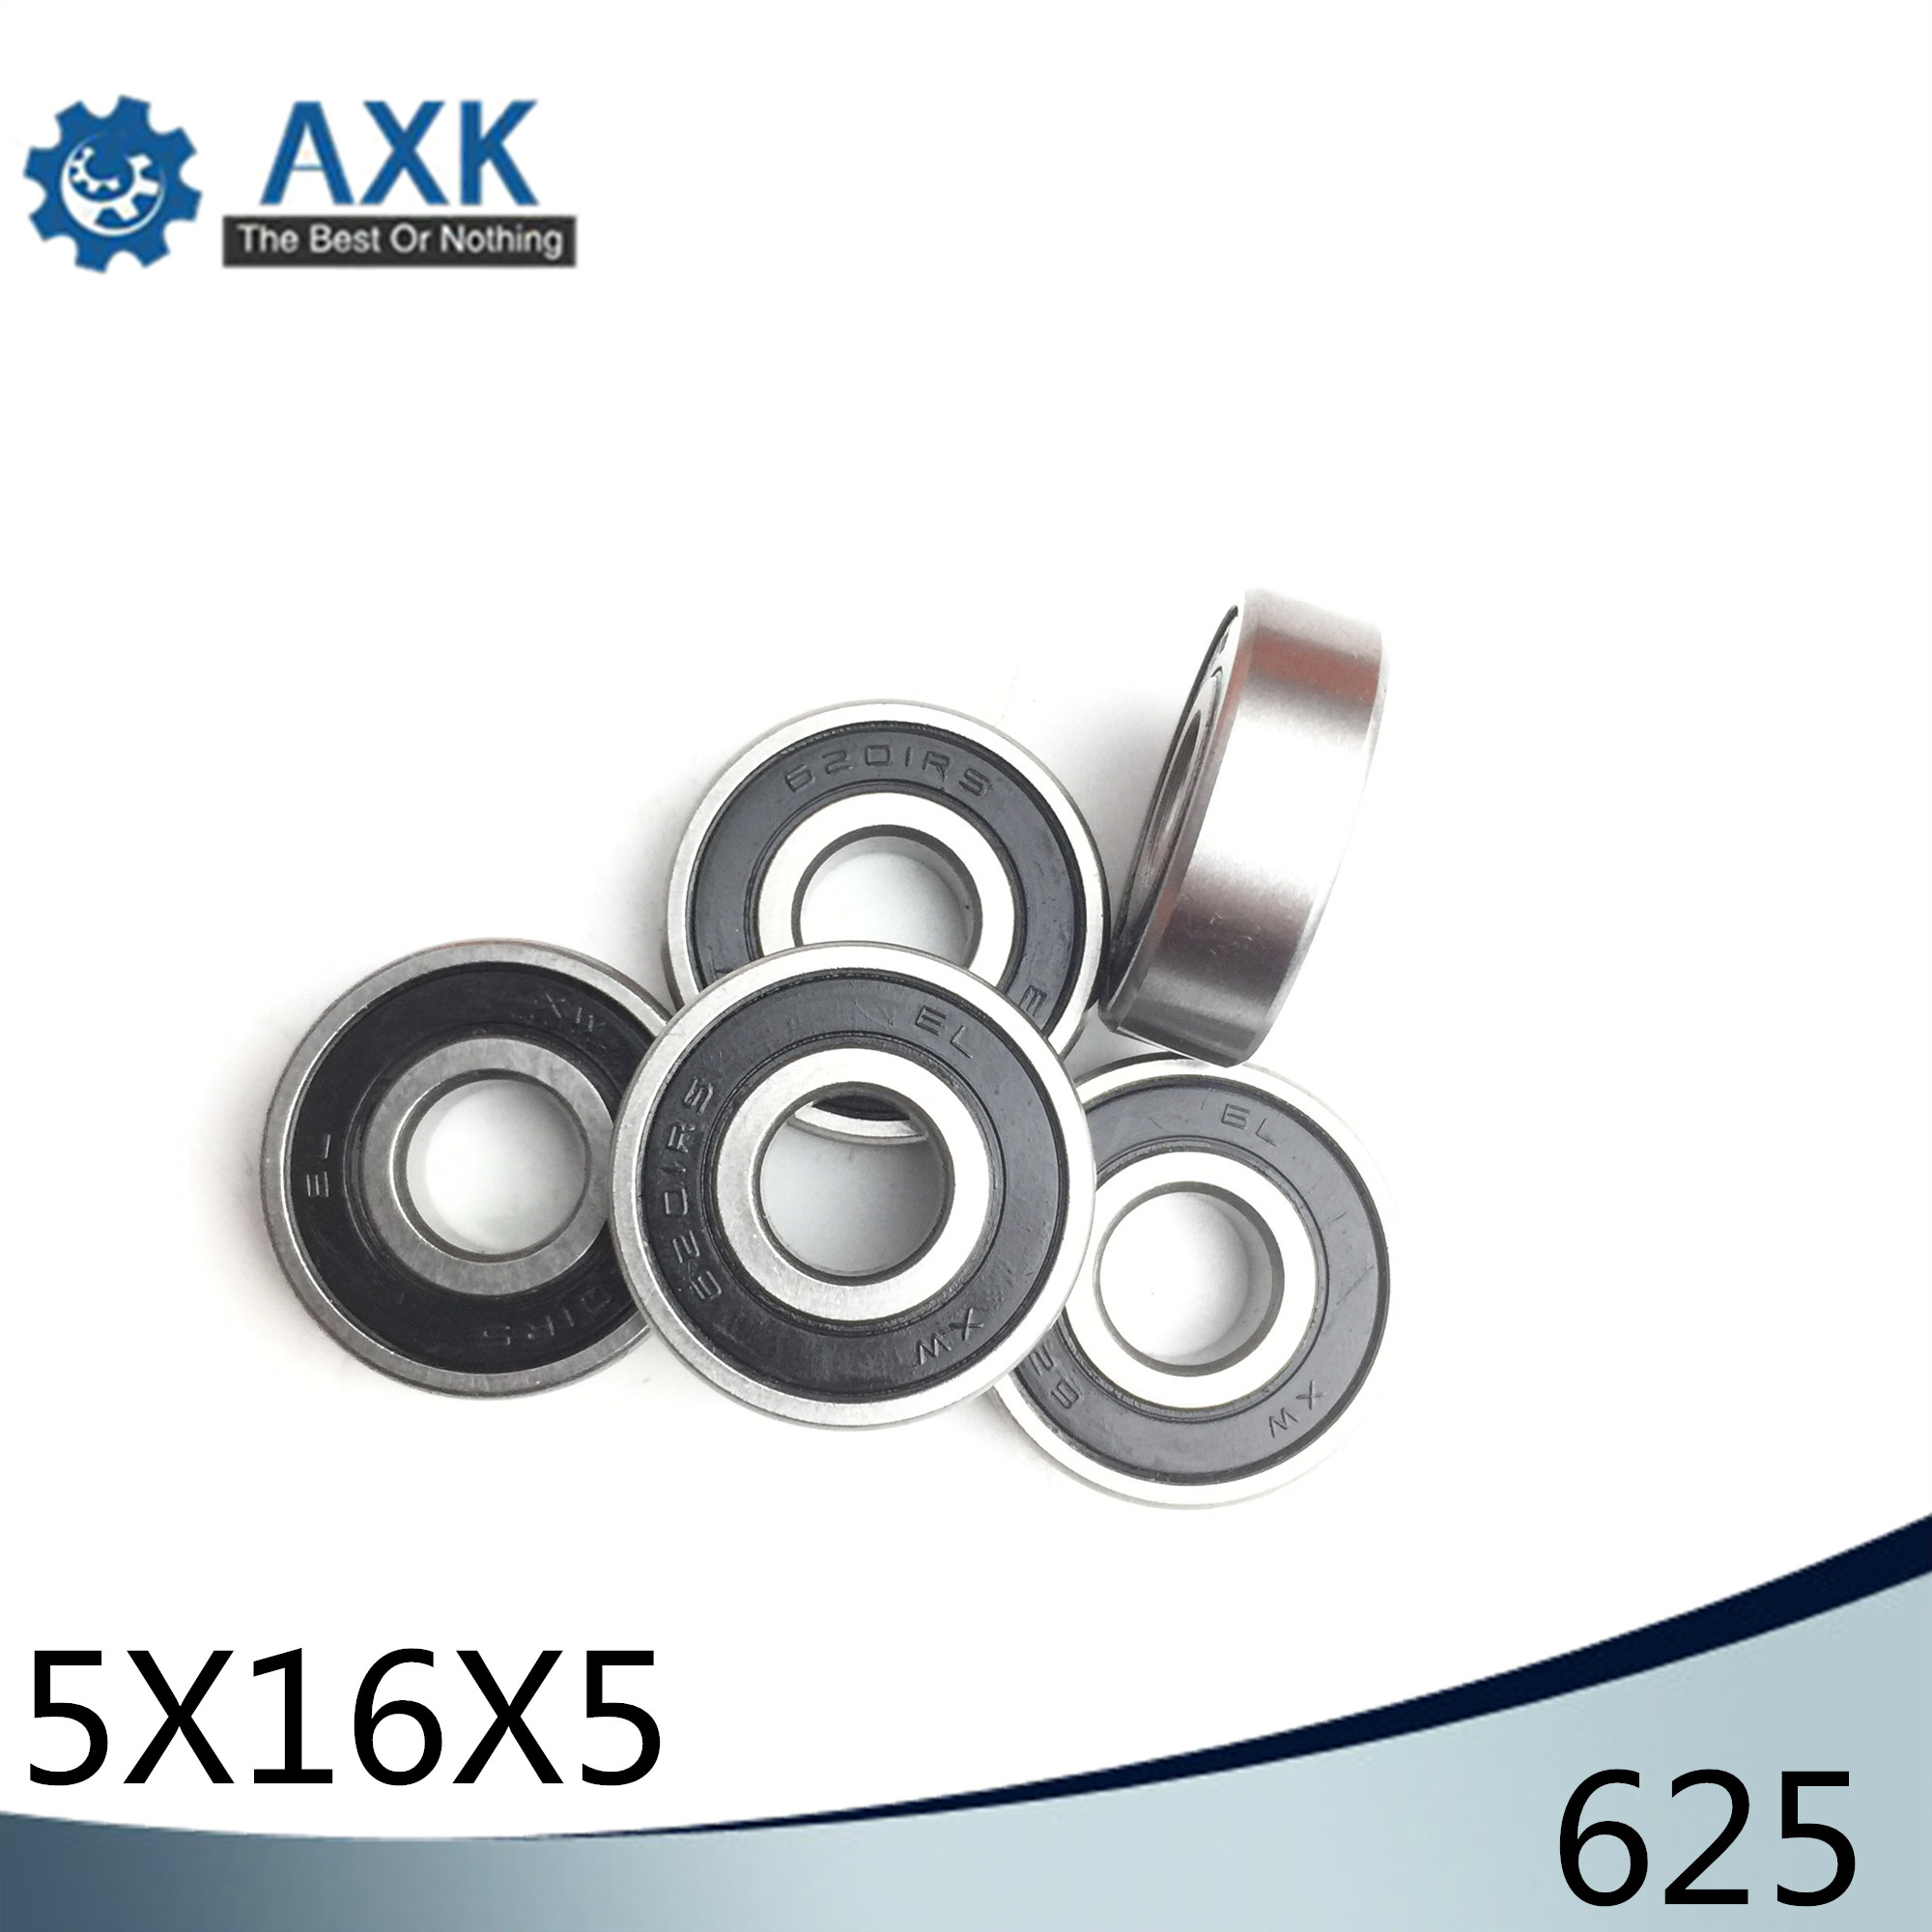 625 Hybrid Ceramic <font><b>Bearing</b></font> <font><b>5*16*5</b></font> mm ABEC-1 ( 1 PC) Industry Motor Spindle 625HC Hybrids Si3N4 Ball <font><b>Bearings</b></font> 3NC 625RS image